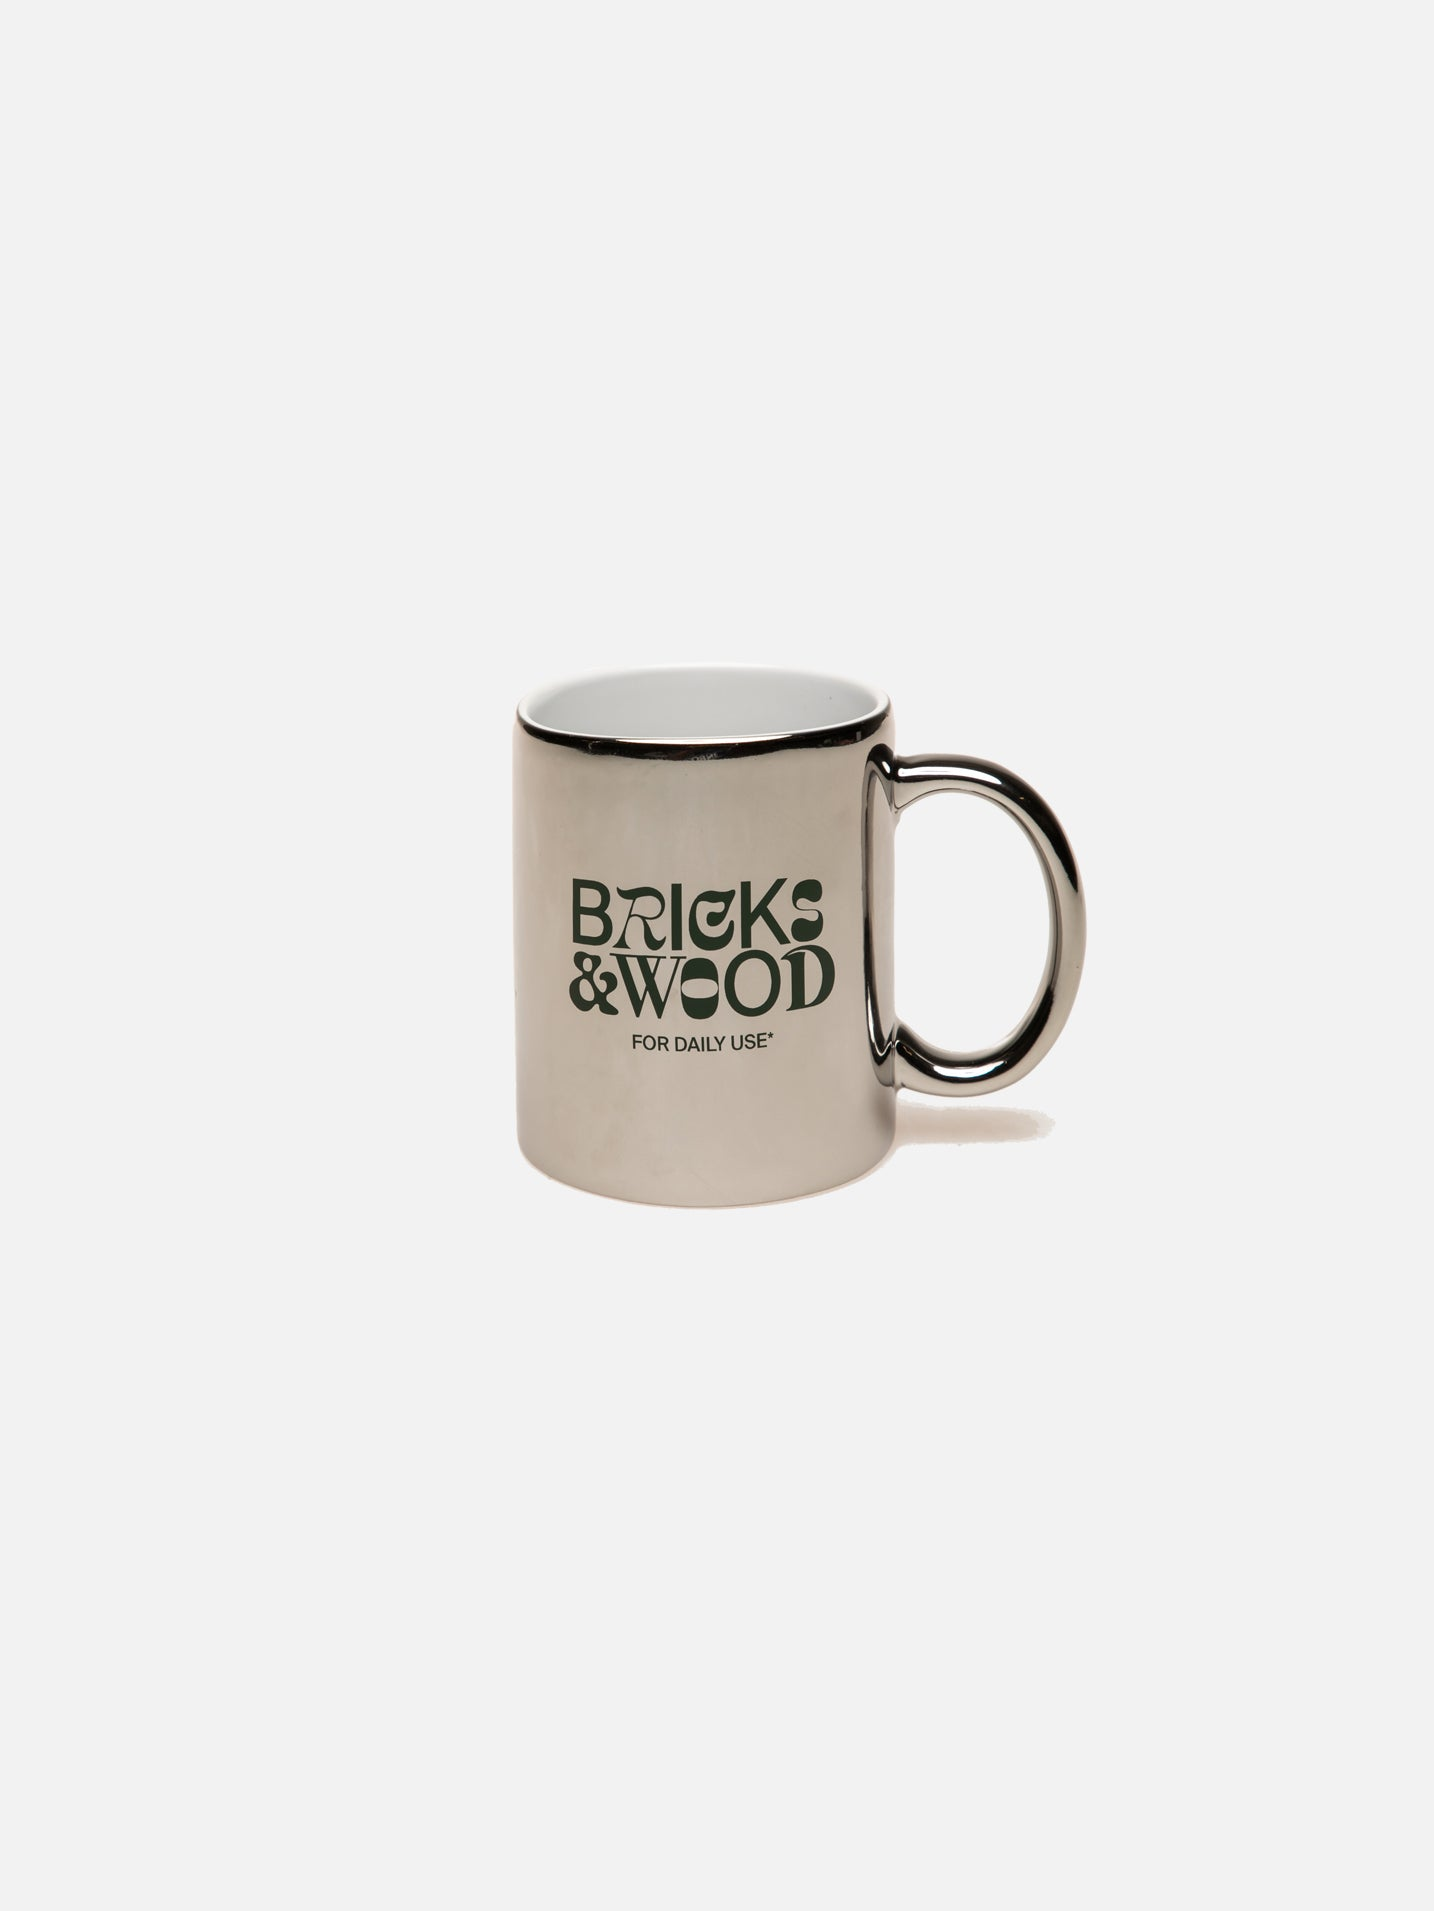 For Daily Use* Pencil Holder/Coffee Mug - Chrome/Green